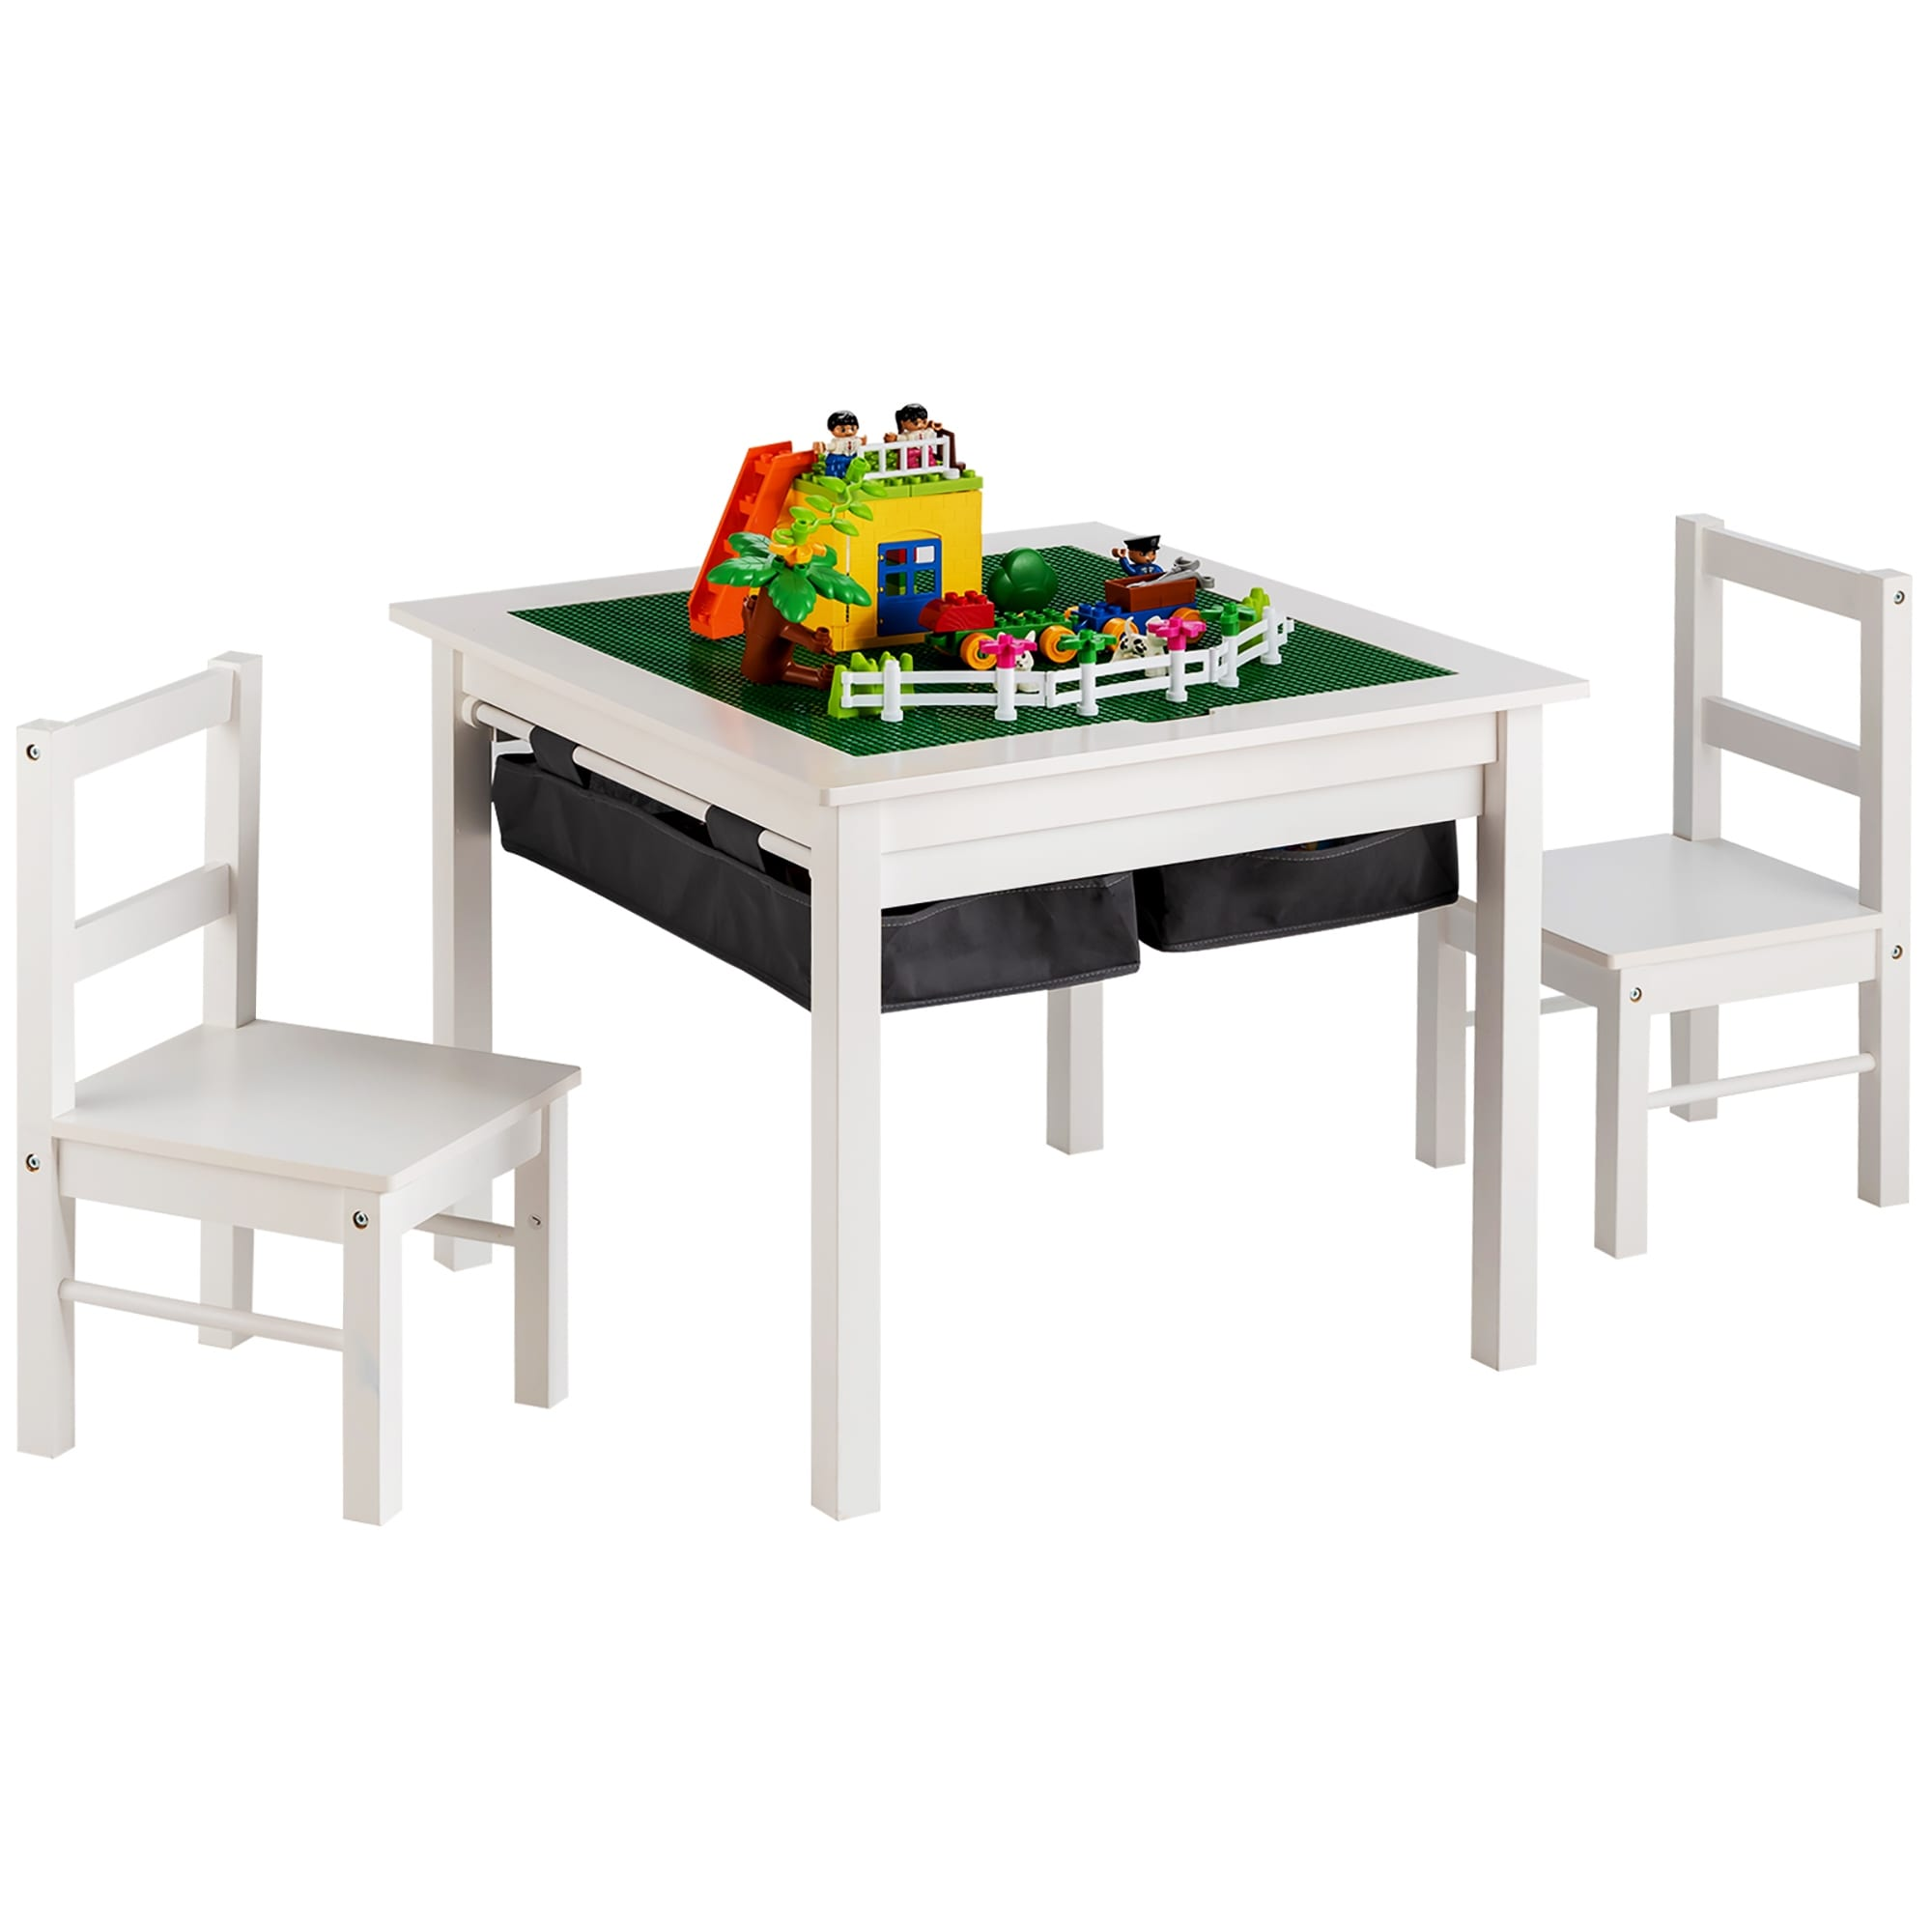 Picture of: Shop Costway 5 In 1 Kids Activity Table And 2 Chairs Set W Storage Building Overstock 32360661